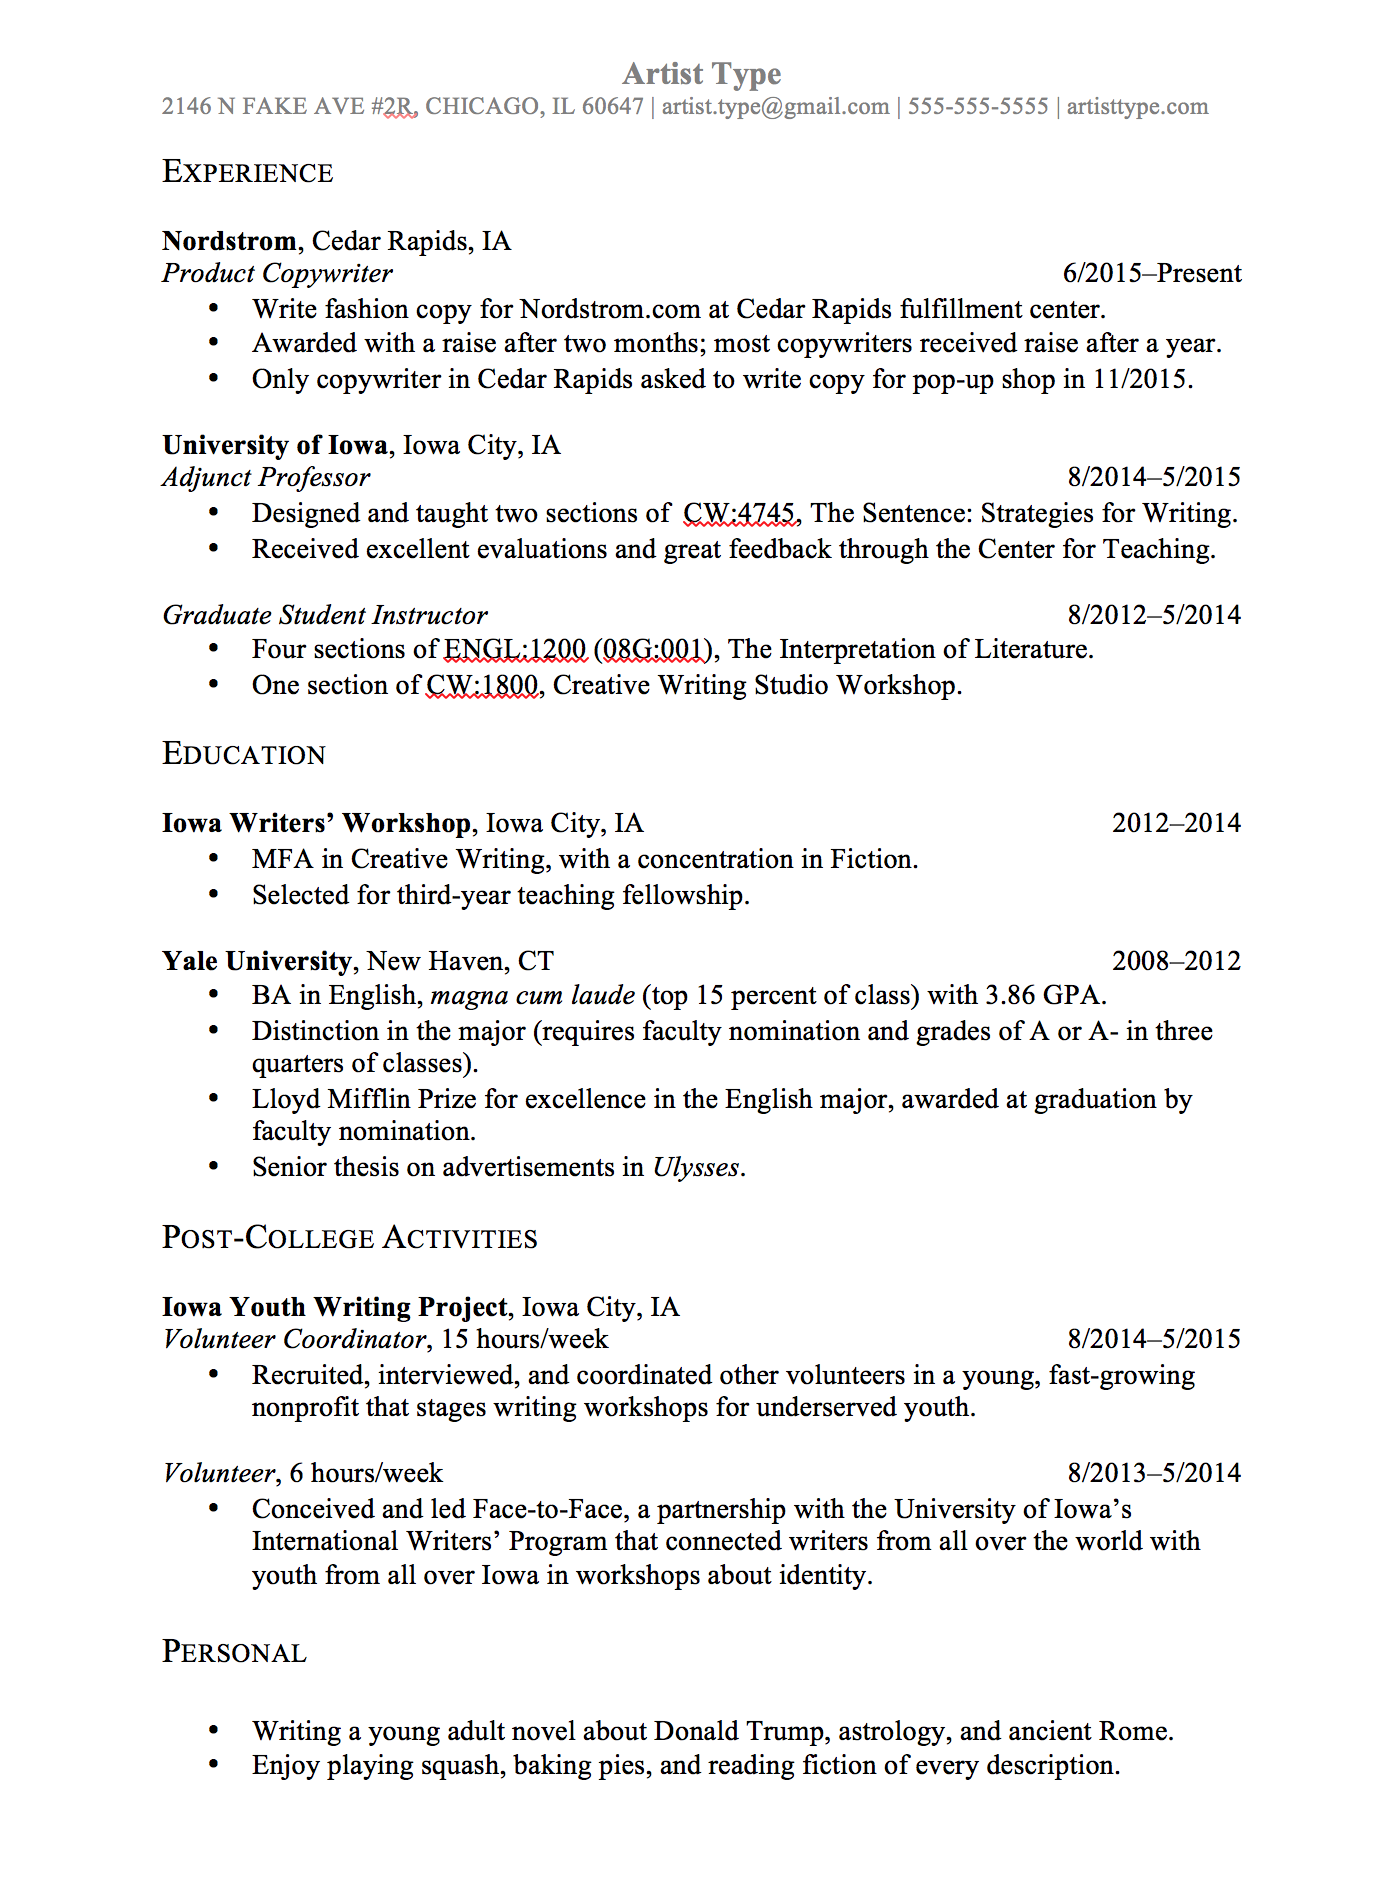 Resume Template For Law School Admissions 7sage Admissions